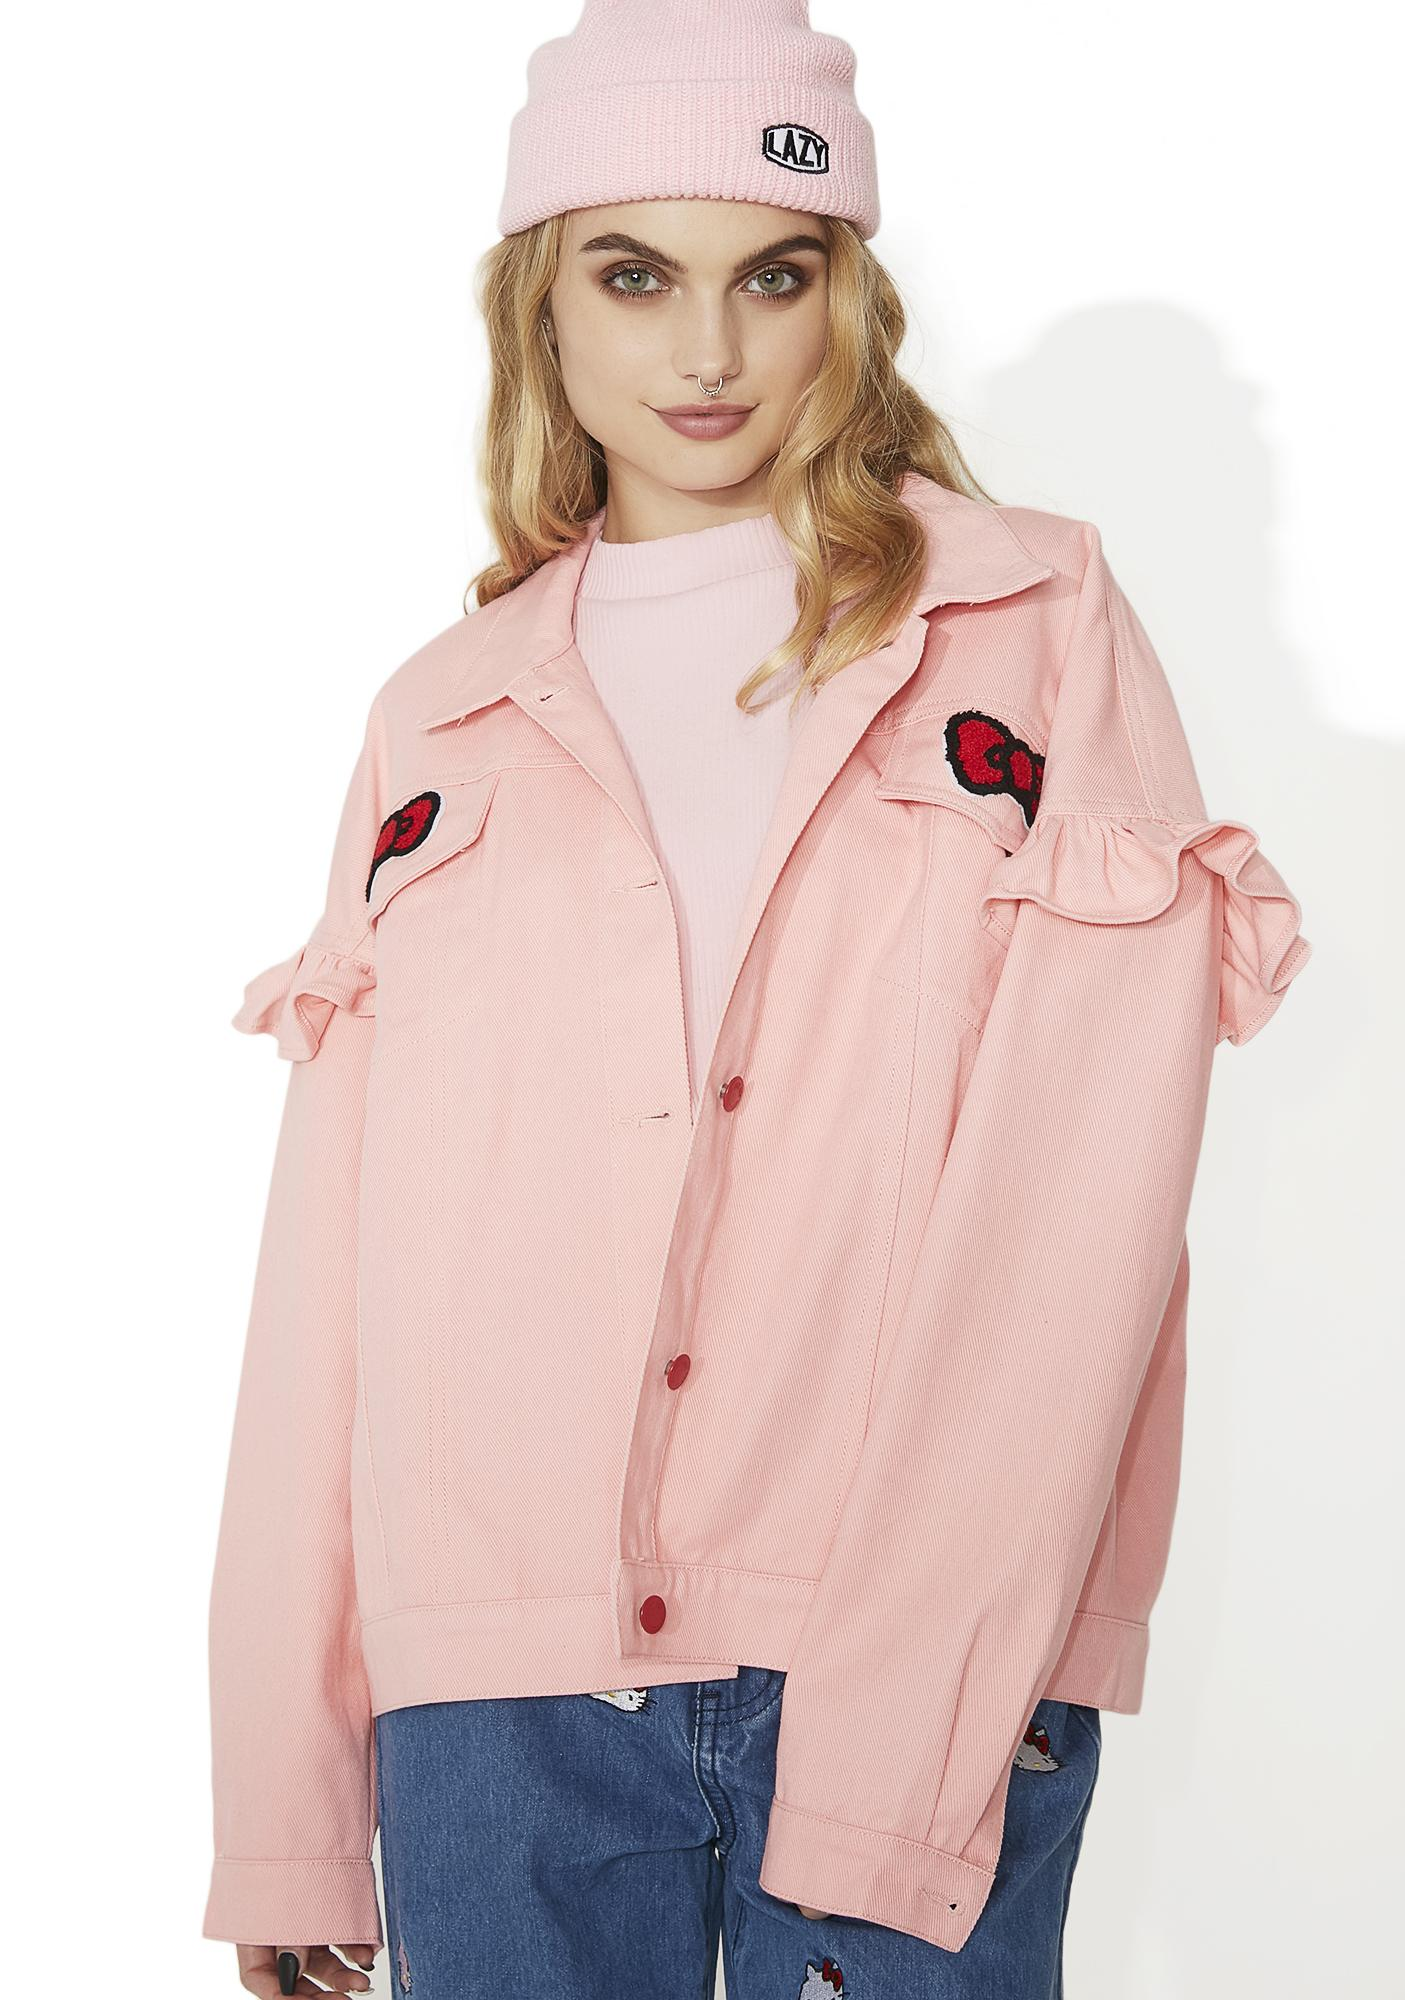 Lazy Oaf Hello Kitty Frilly Denim Jacket